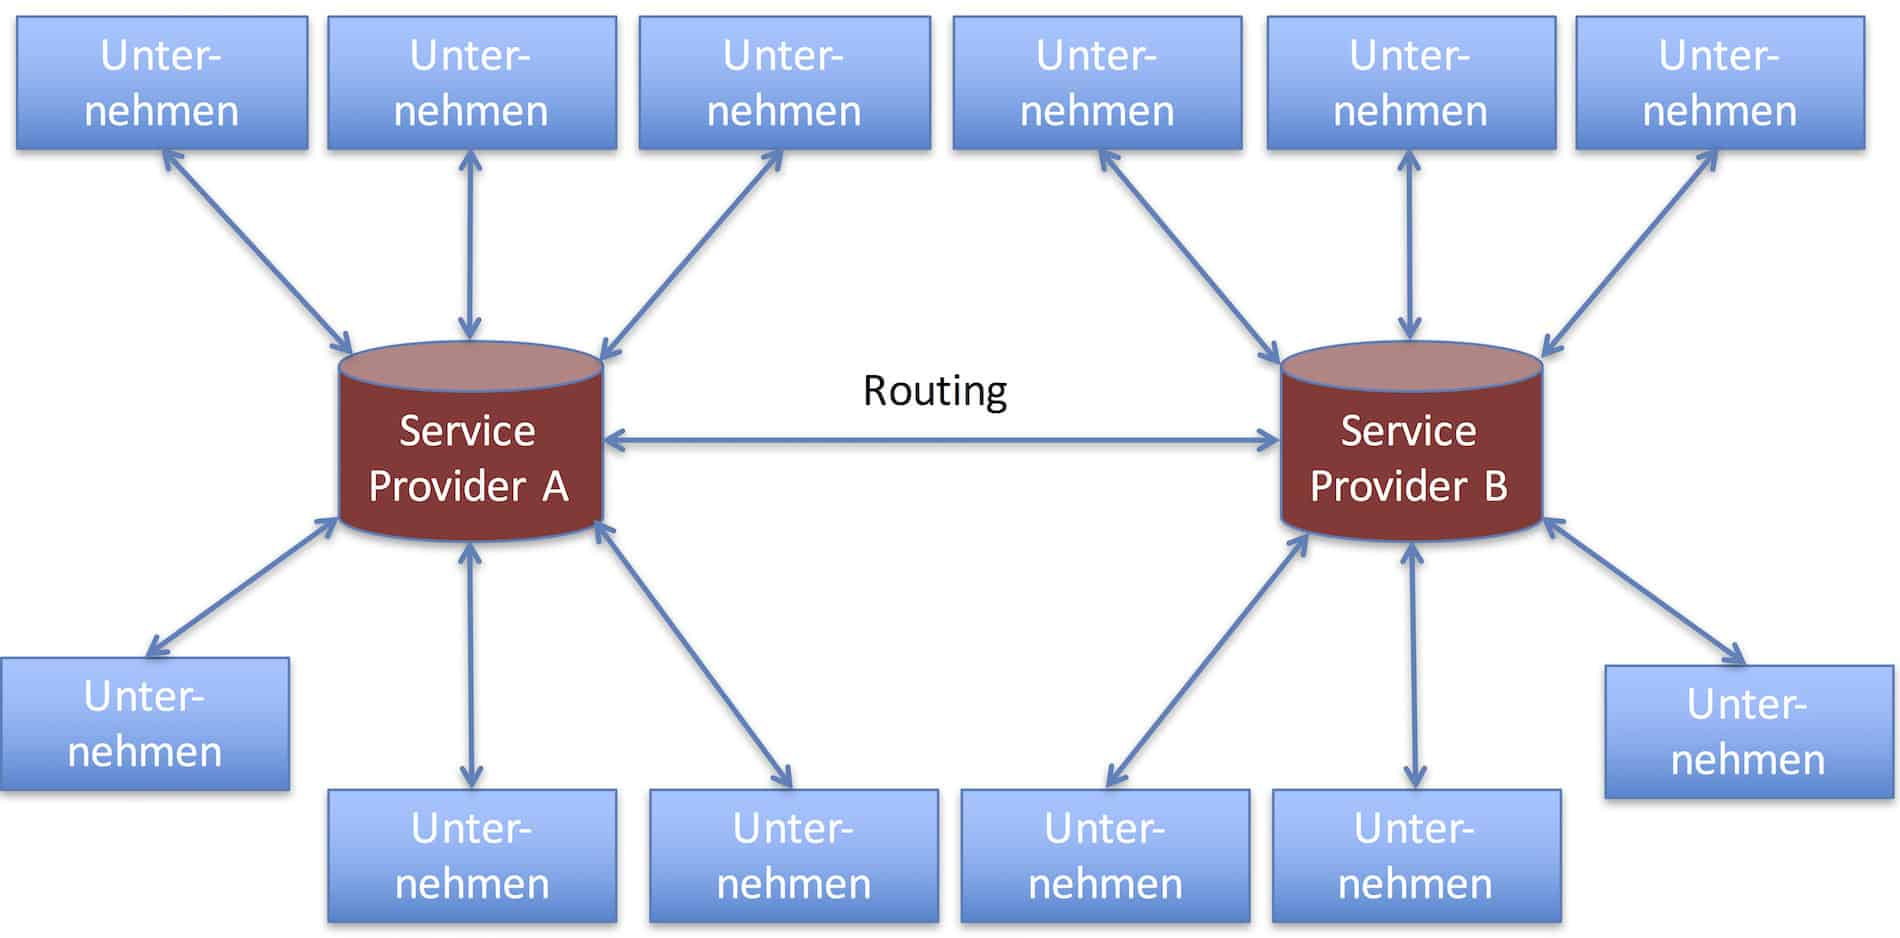 Routing-Szenario